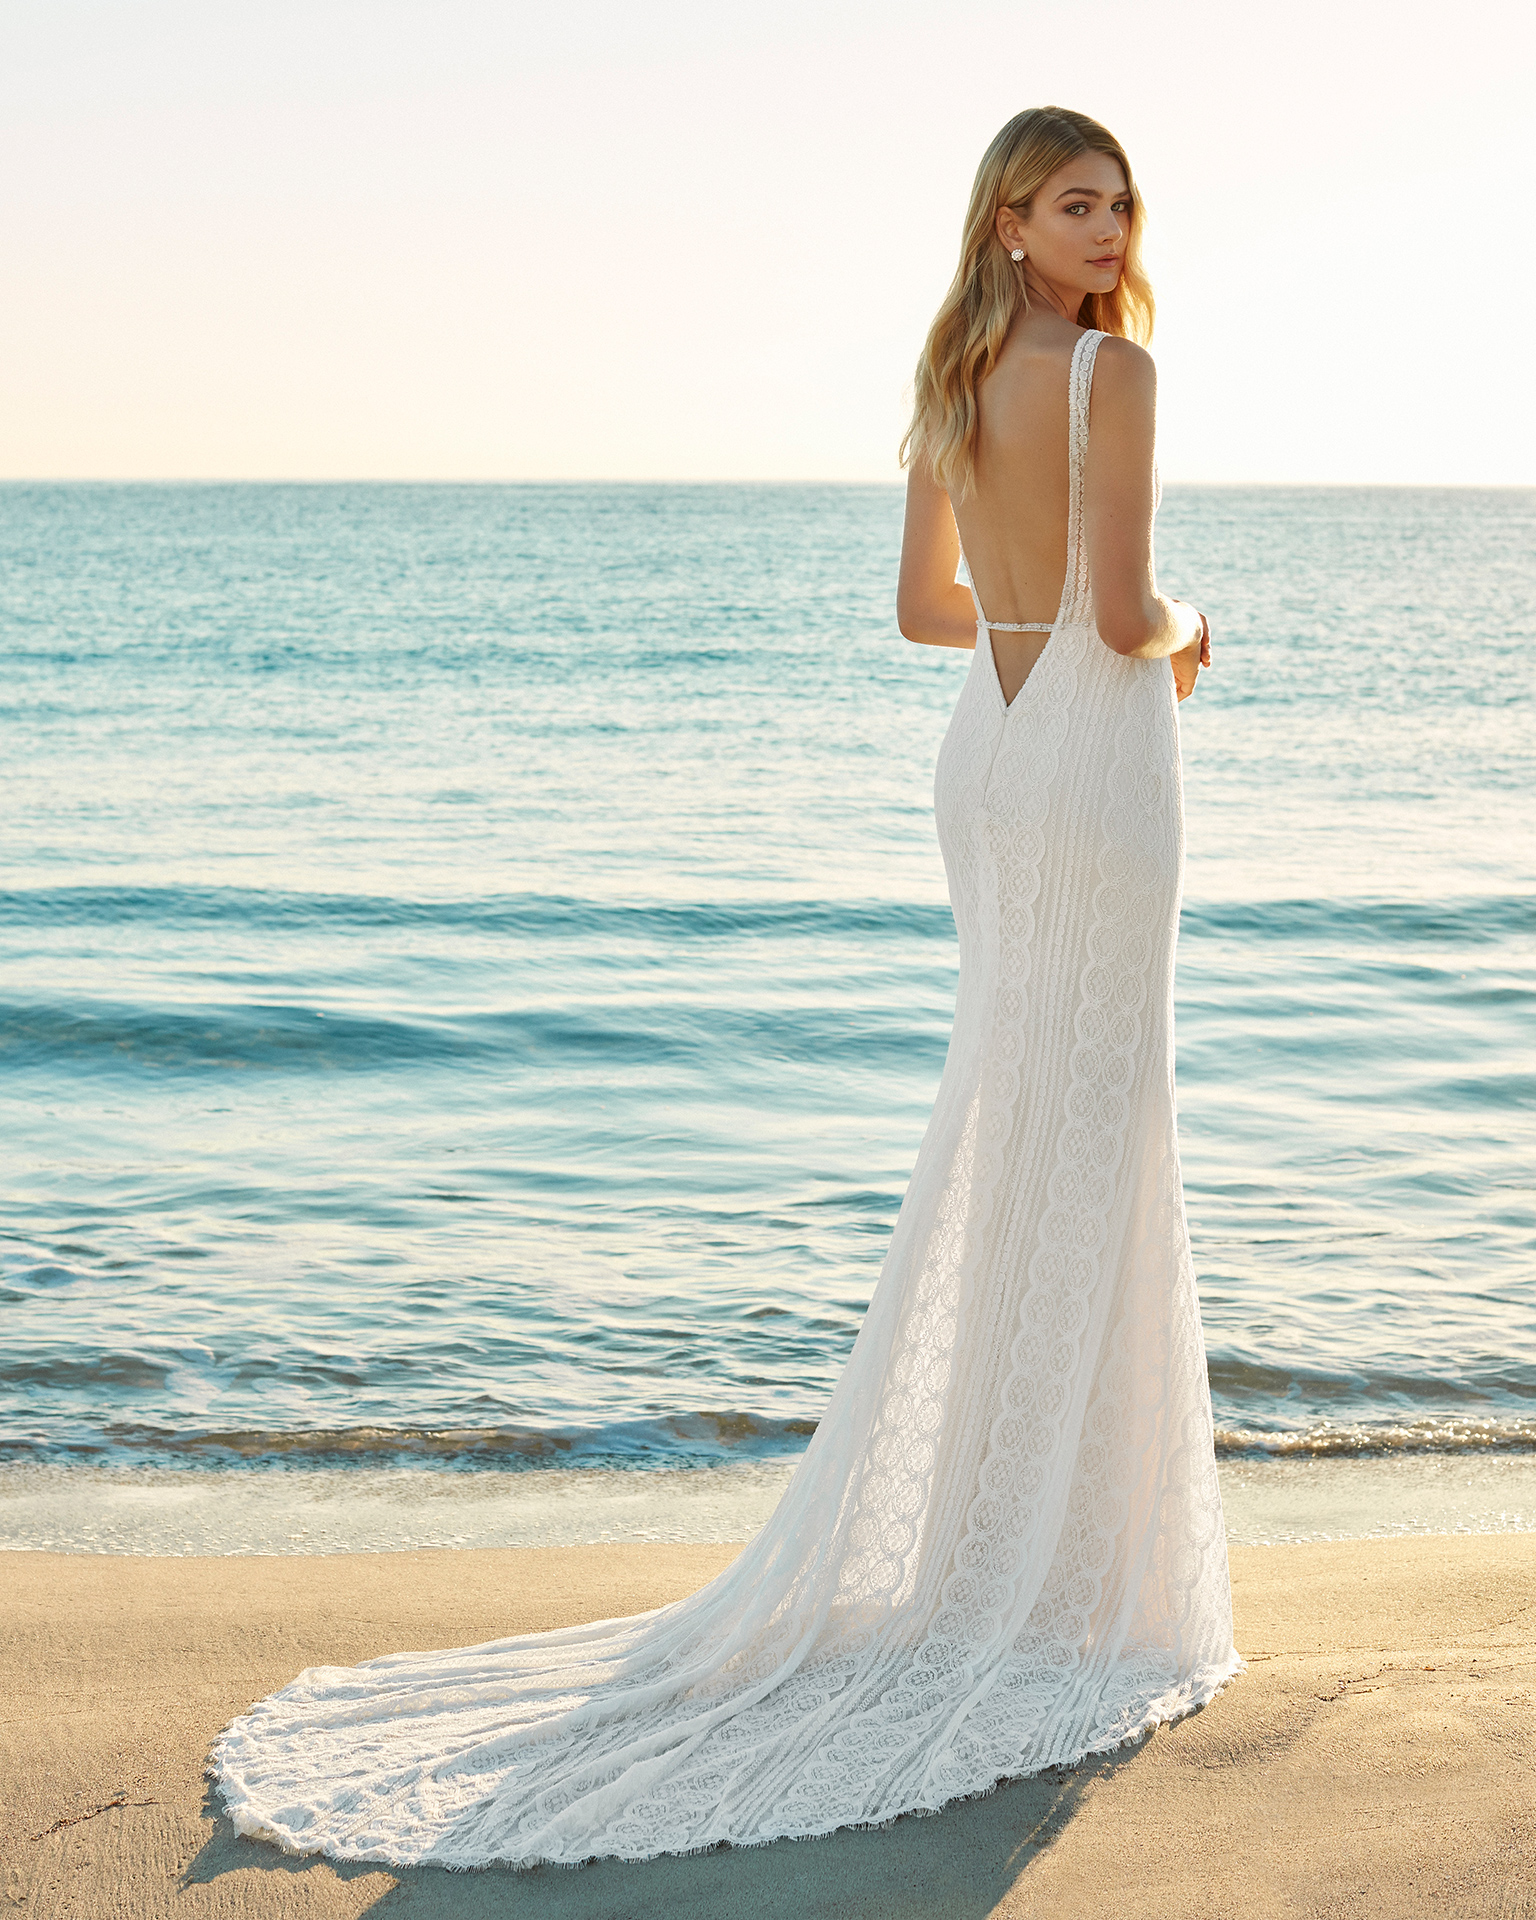 Wedding Dresses - New 2019 Collections